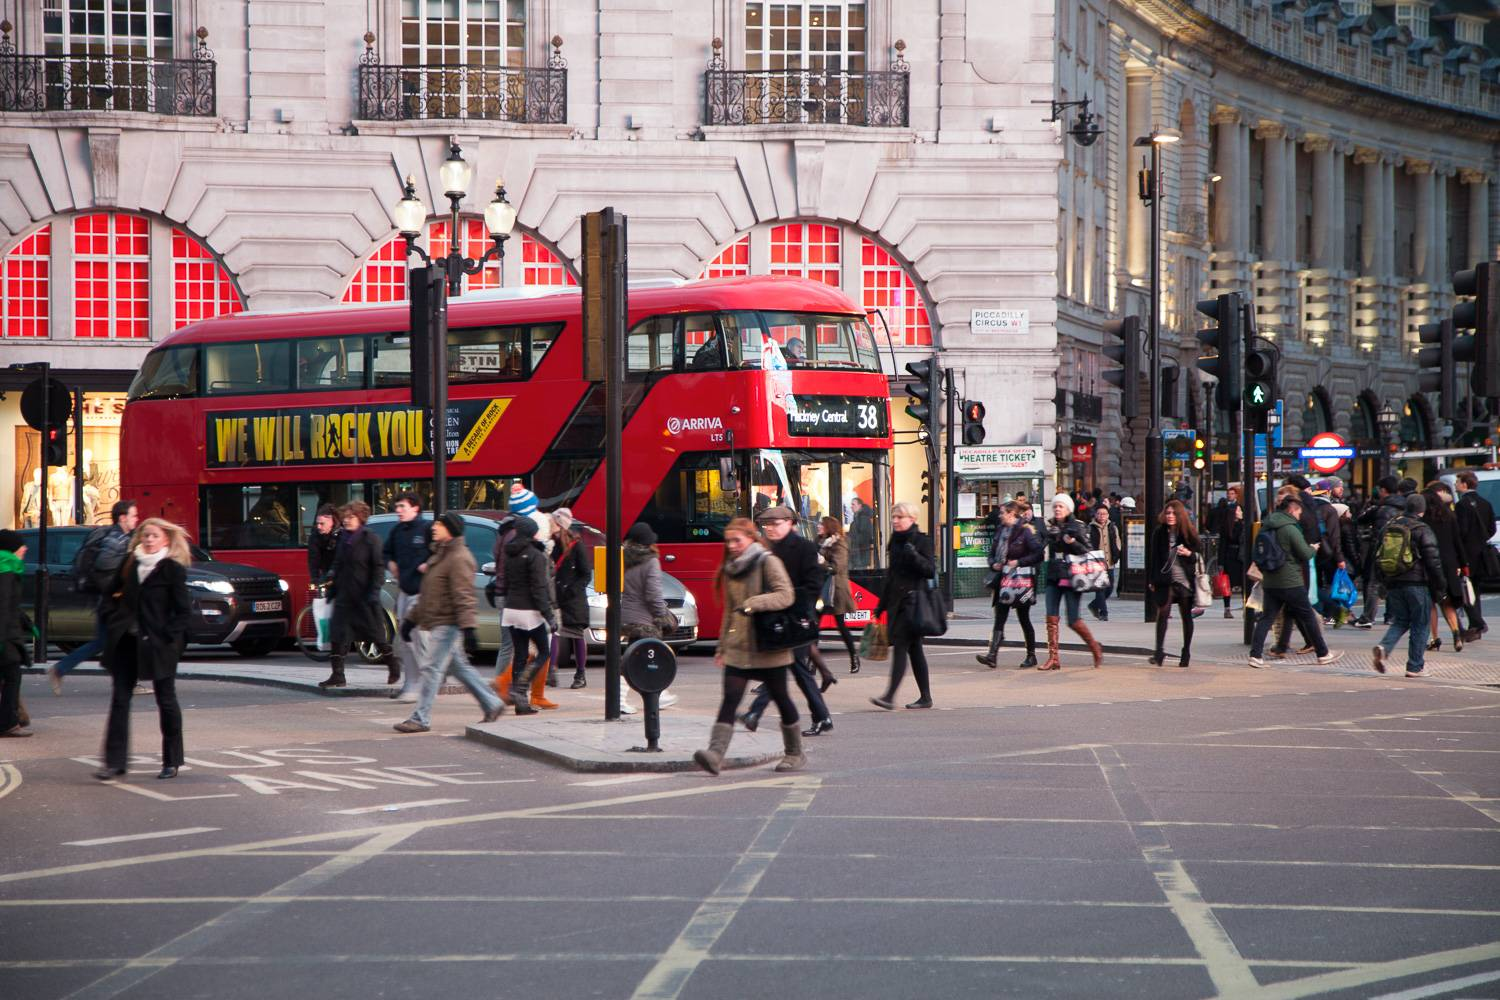 Image of pedestrians and a red double-decker bus on the streets of Piccadilly Circus.